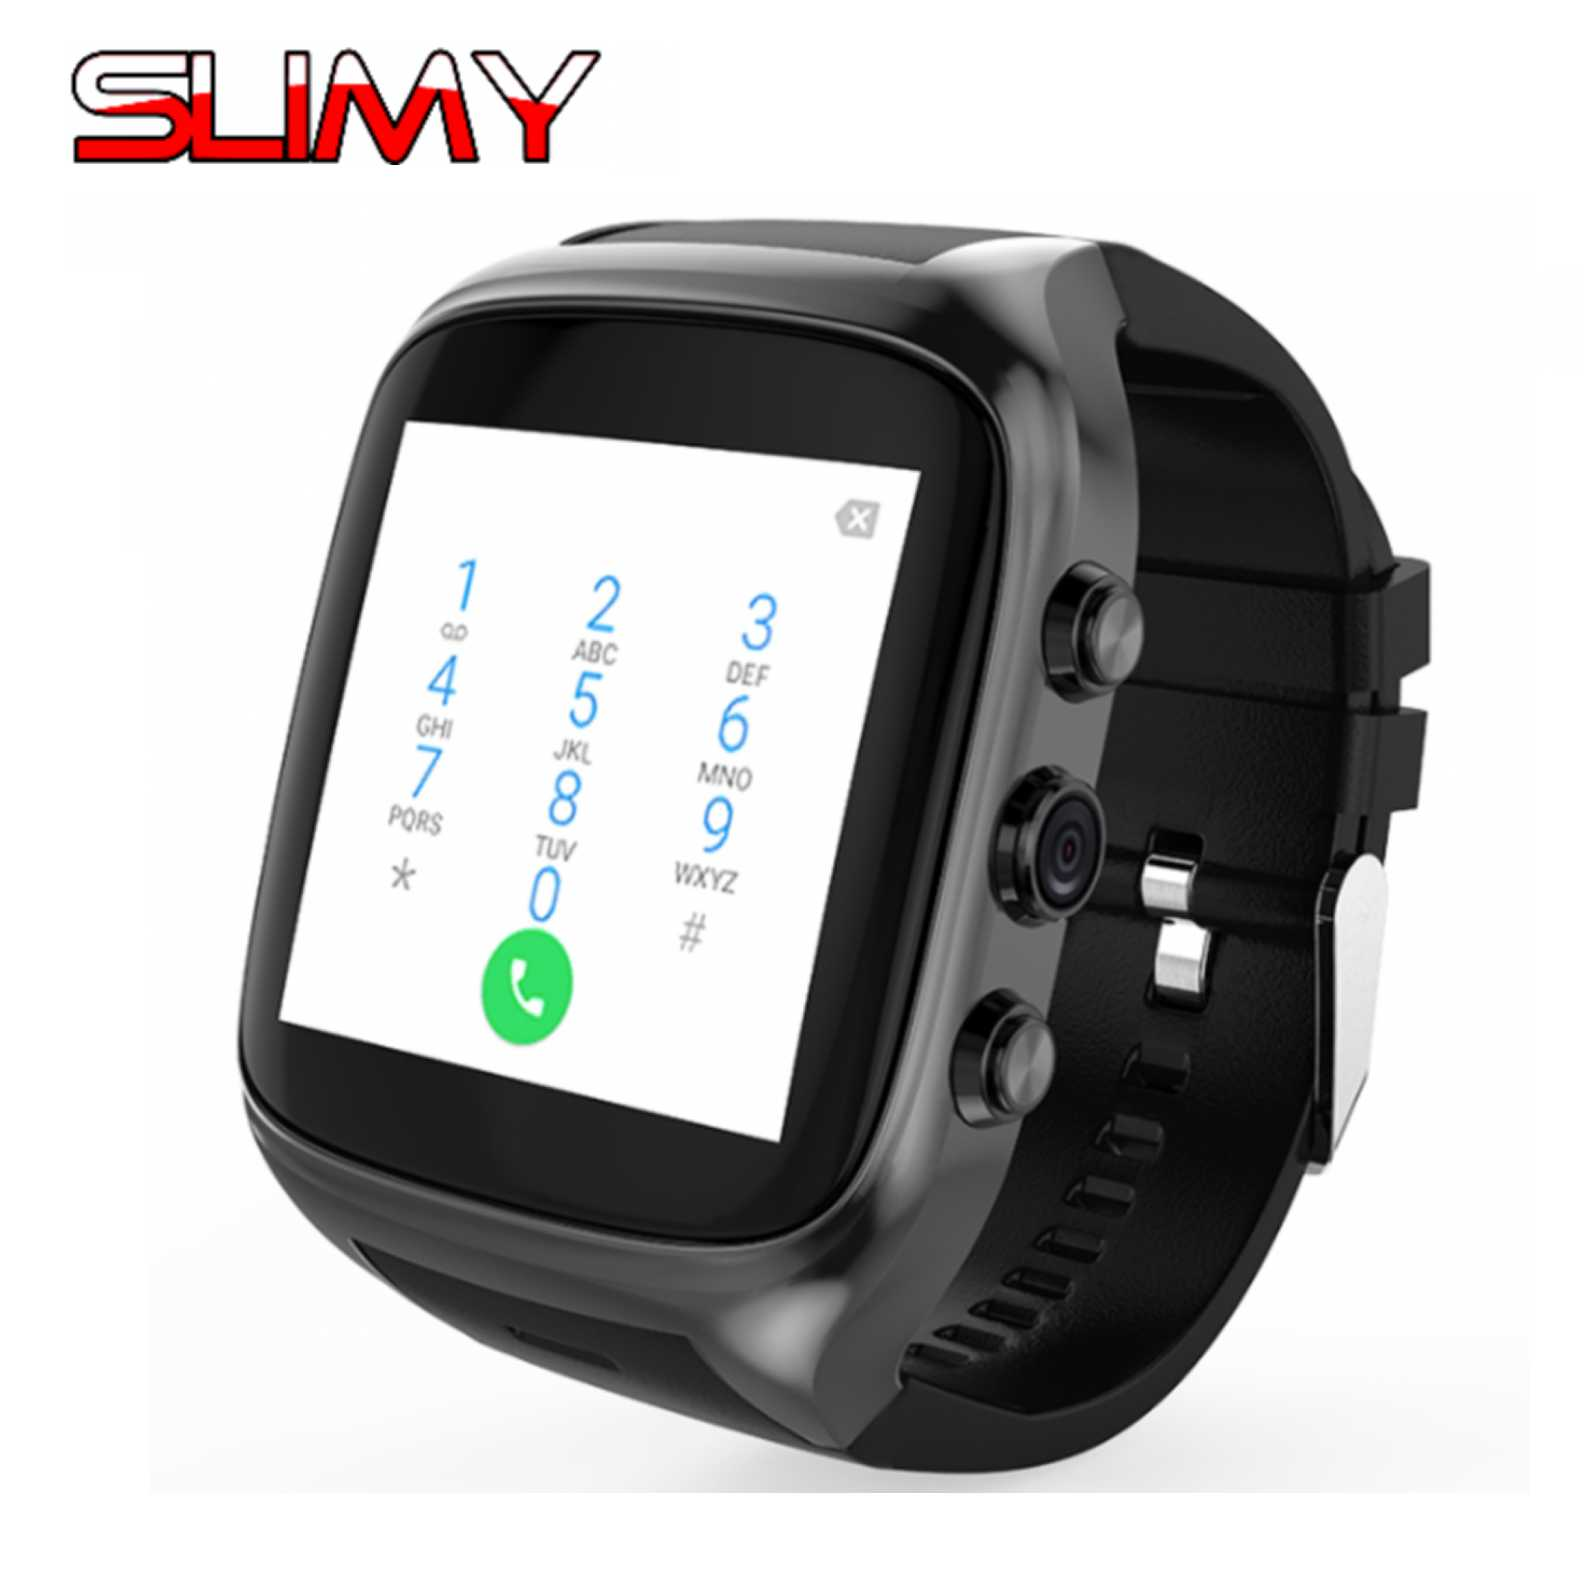 Slimy Android 5.1 OS Smart Watch X02S Electronics Gift 1.54 Inch MTK6580 Smartwatch Phone Support 3G Wifi Nano SIM WCDMA GPS 3g smart watch finow k9 android 4 4 bluetooth wcdma wifi gps sim smartwatch colock phone for ios